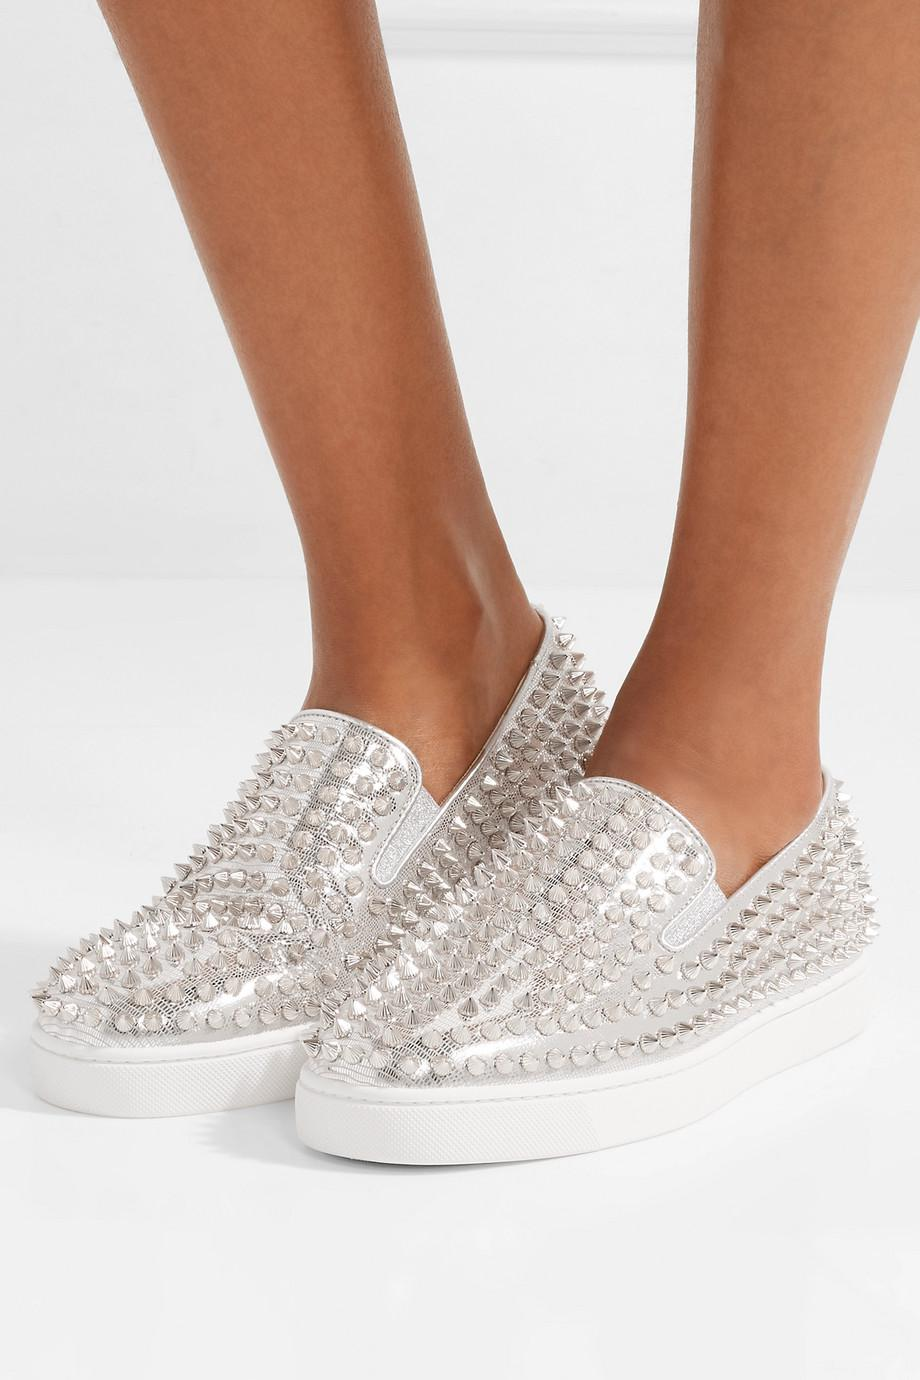 Roller Boat Spiked Metallic Textured-leather Slip-on Sneakers - Silver Christian Louboutin Exclusive Online AxBspYb5xn